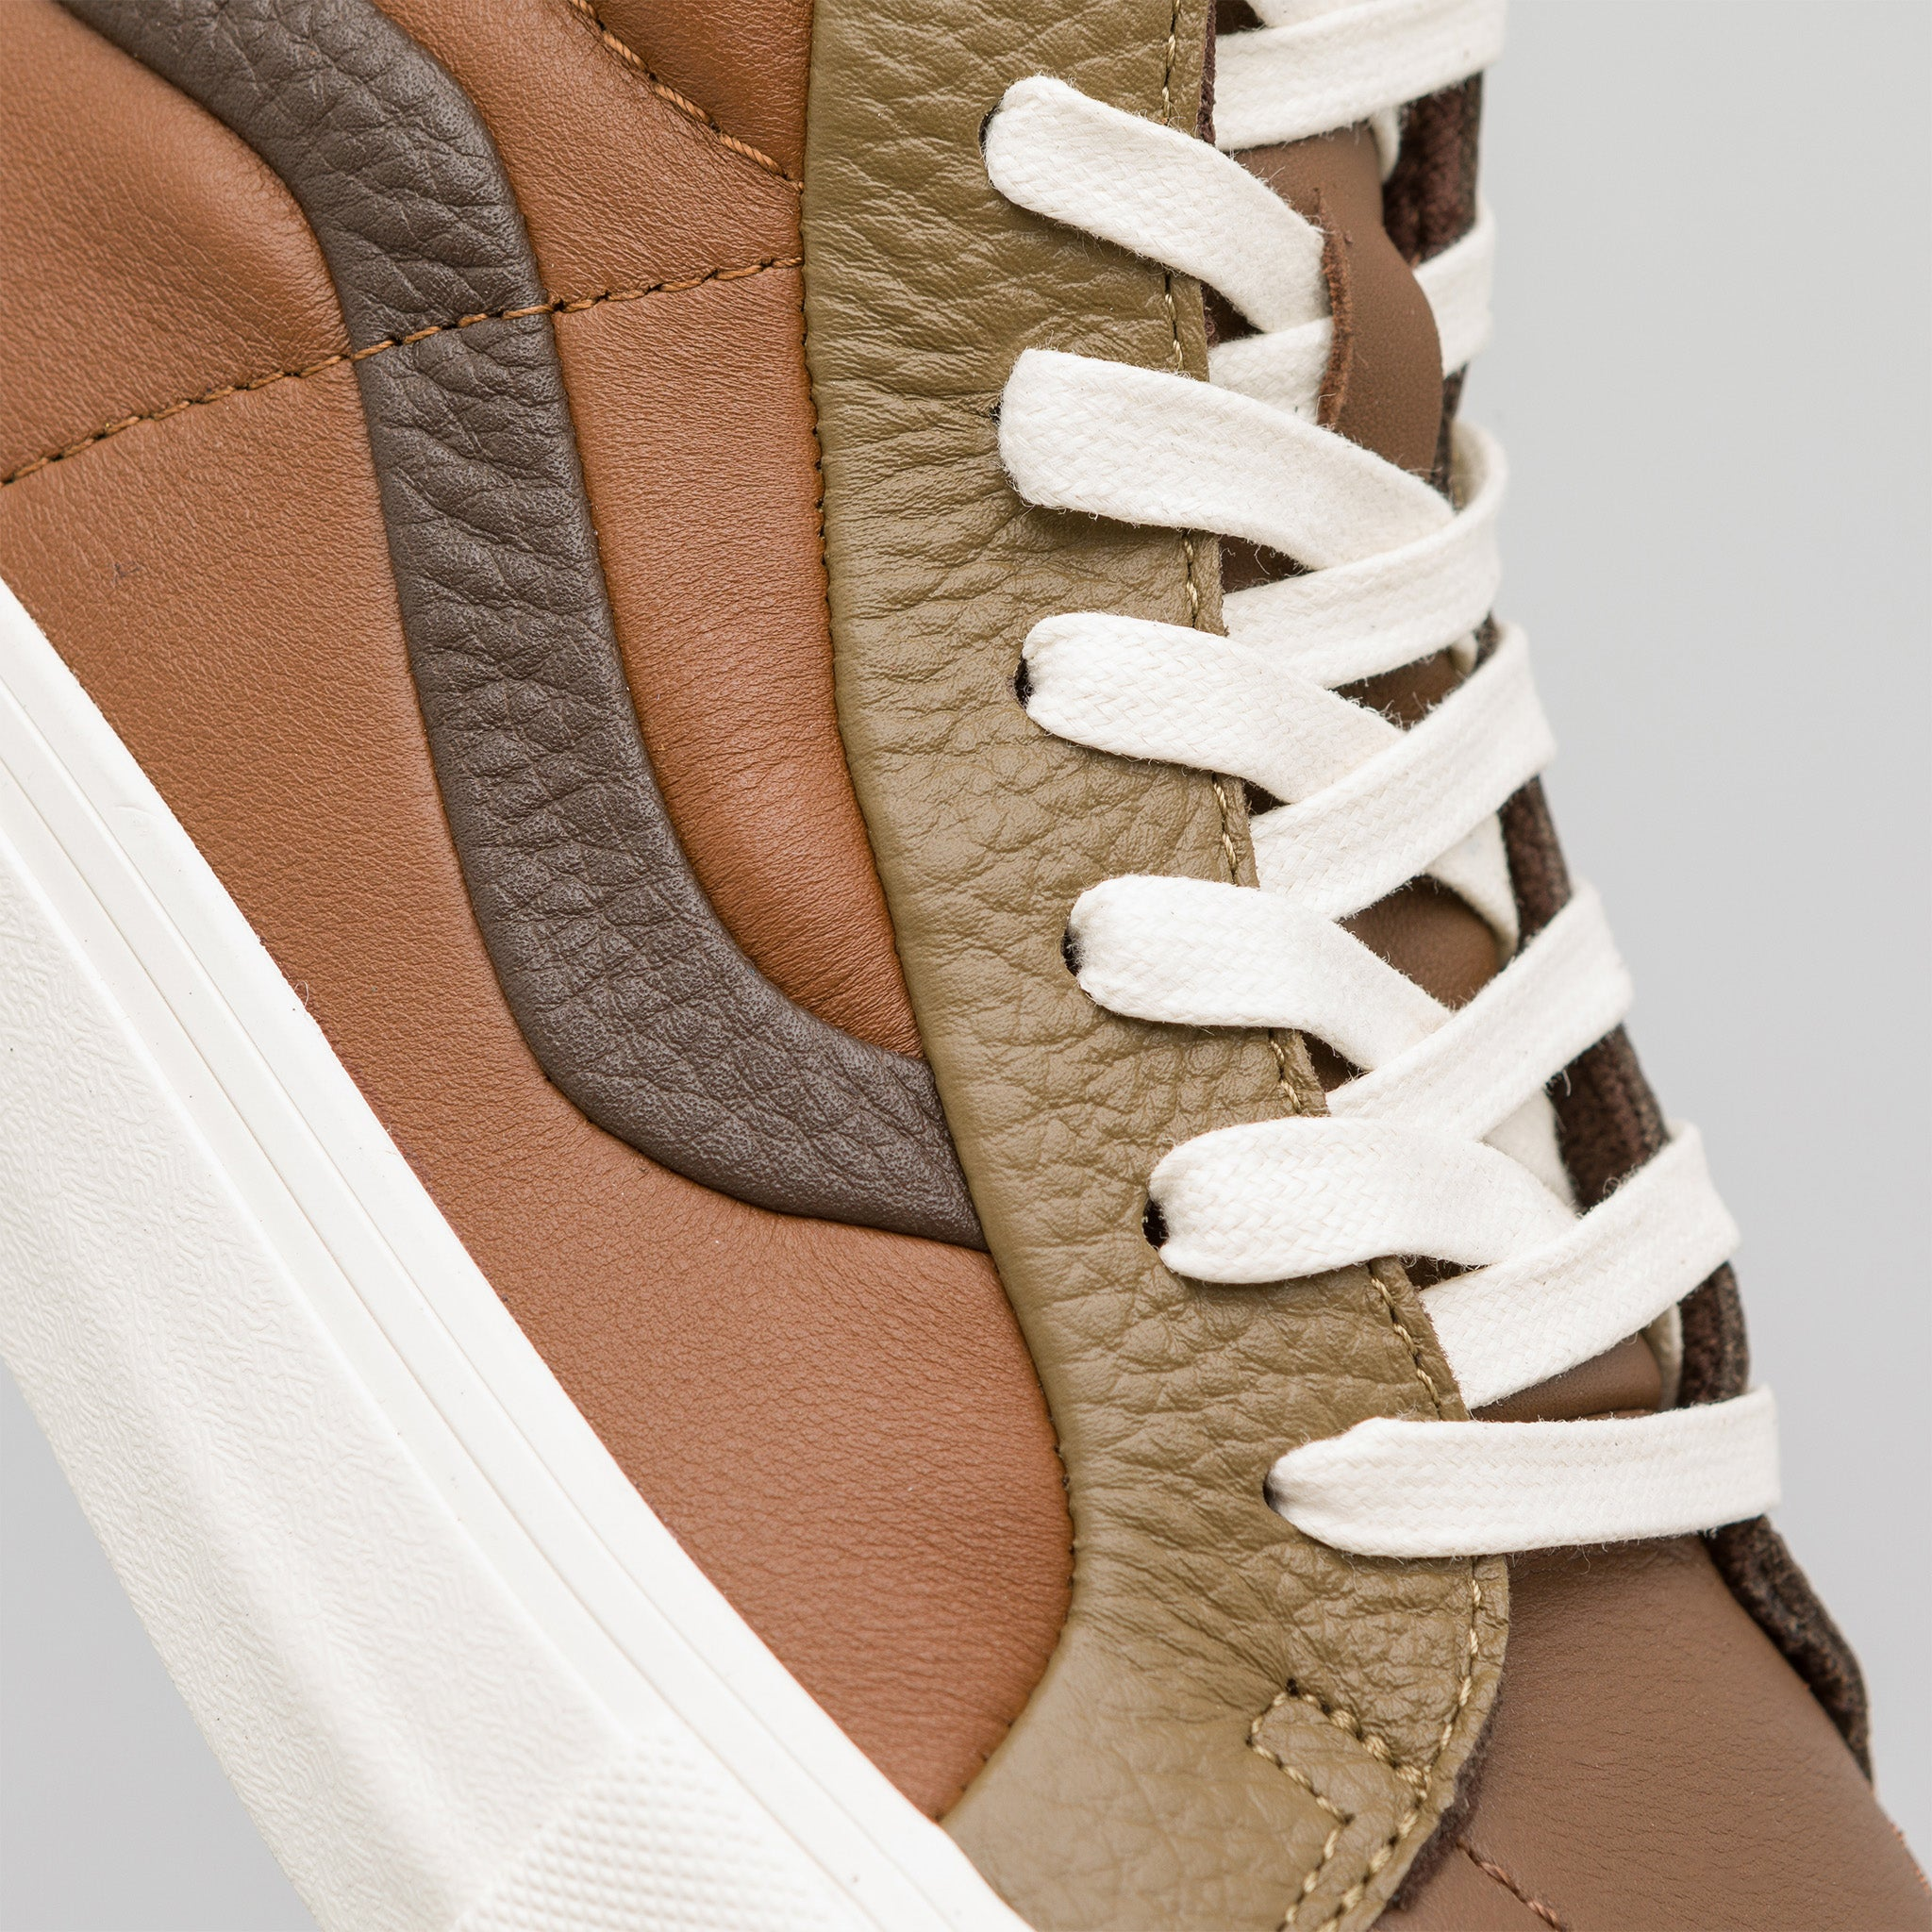 Sk8-Hi Reissue Premium Leather in Multi Brown